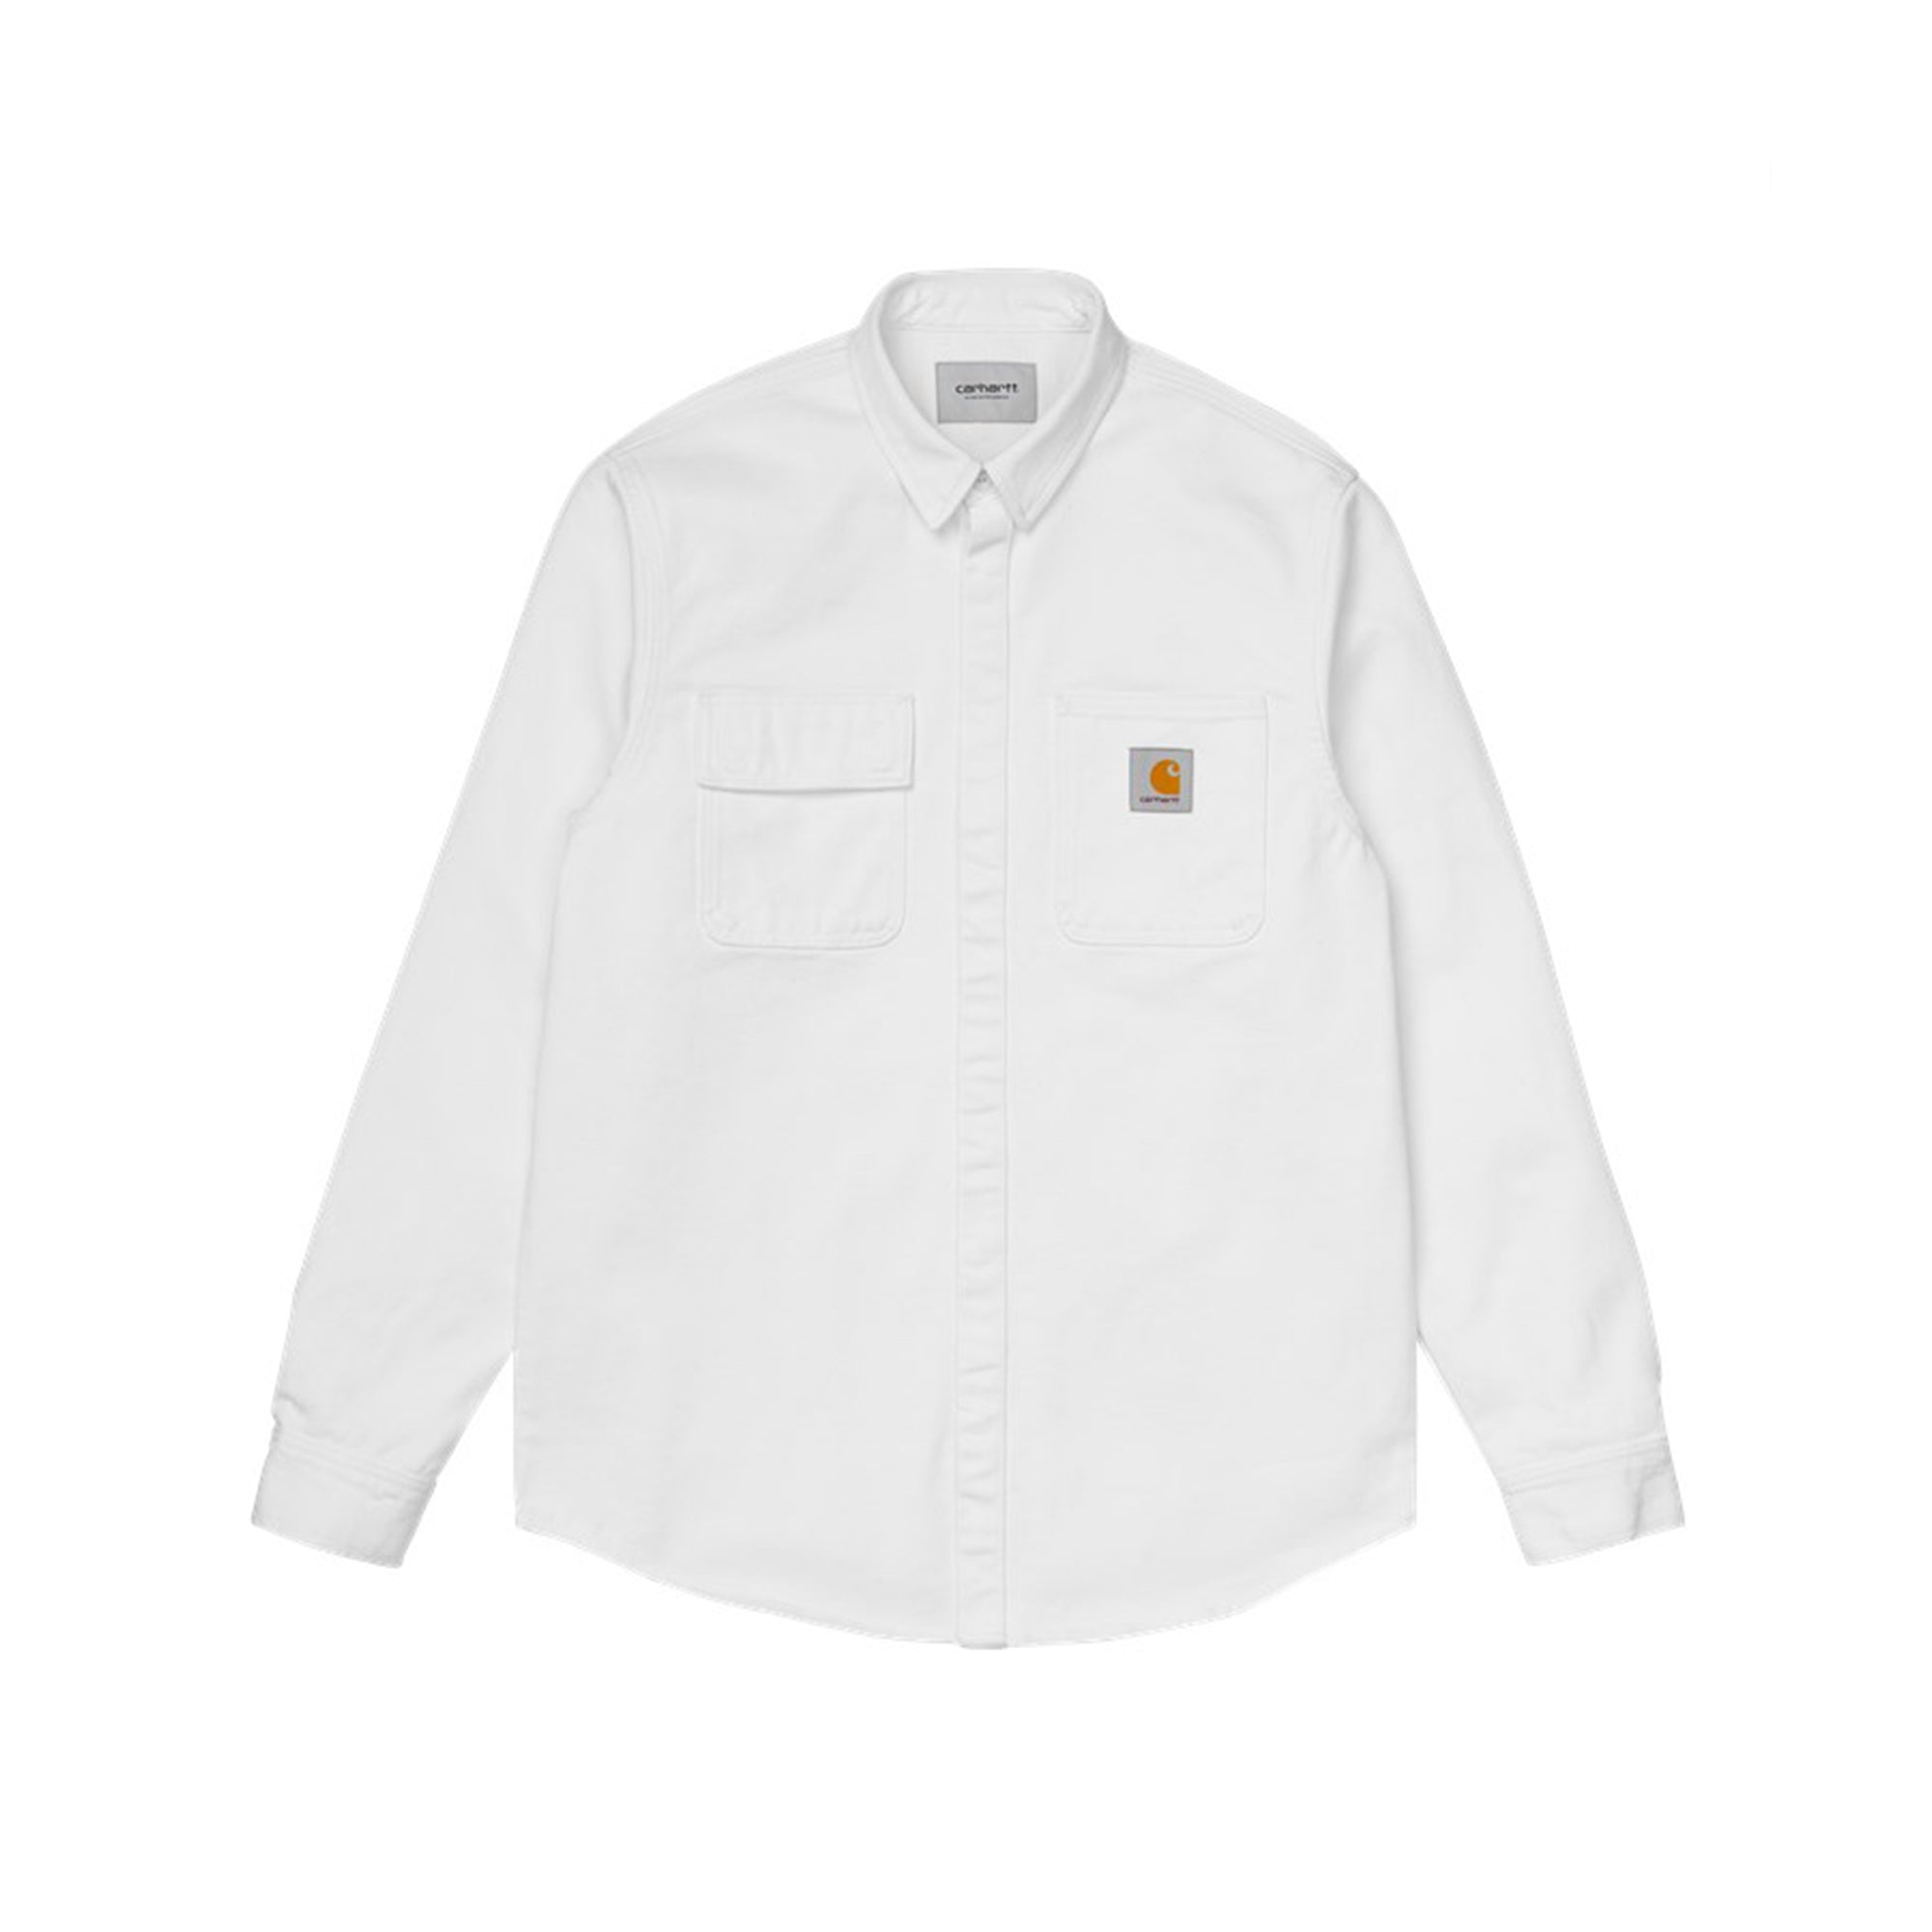 Carhartt WIP Salinac Shirt Jac: White Worn Washed - The Union Project